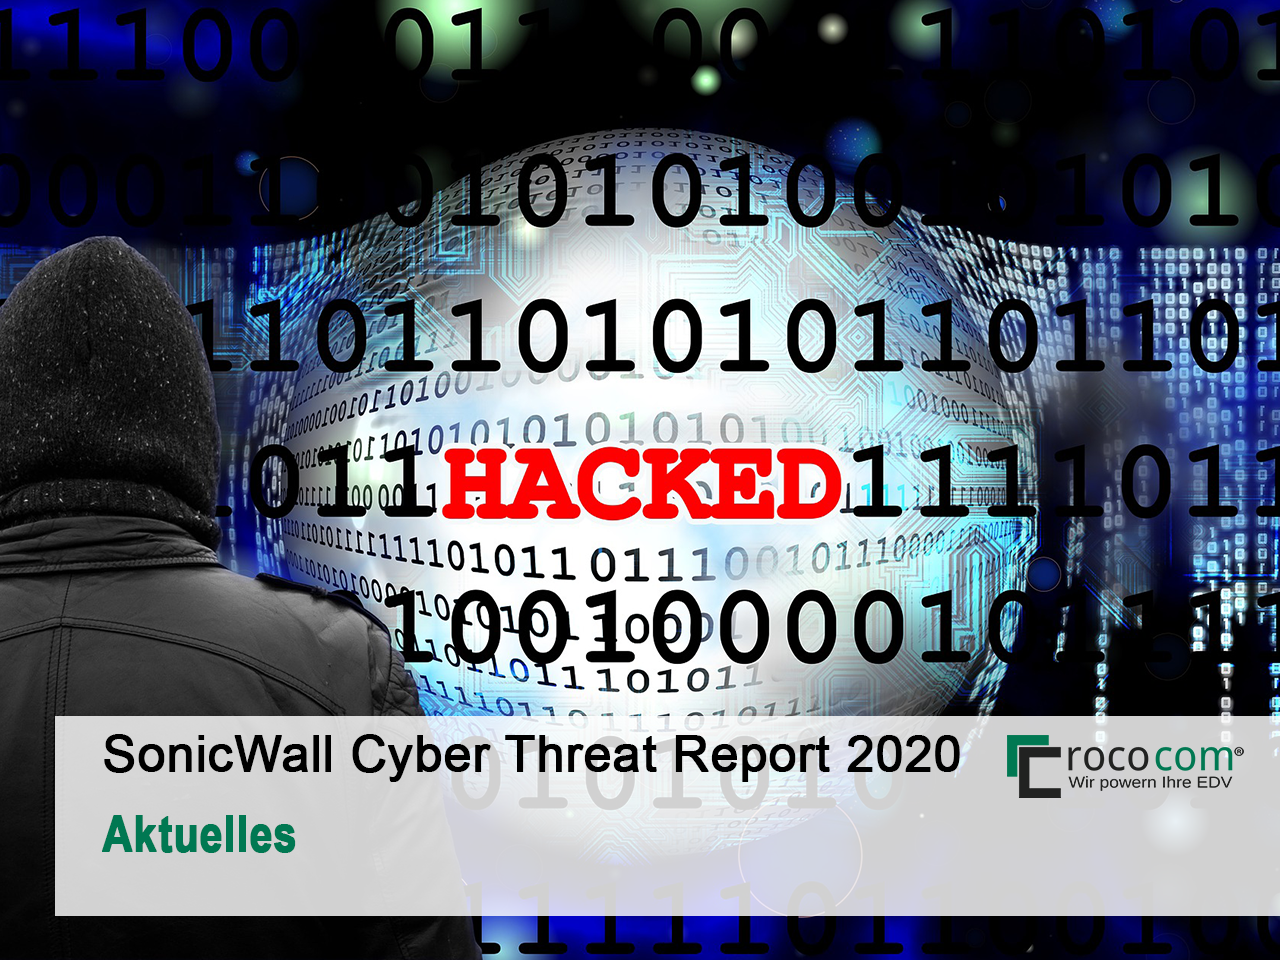 SonicWall Cyber Threat Report 2020